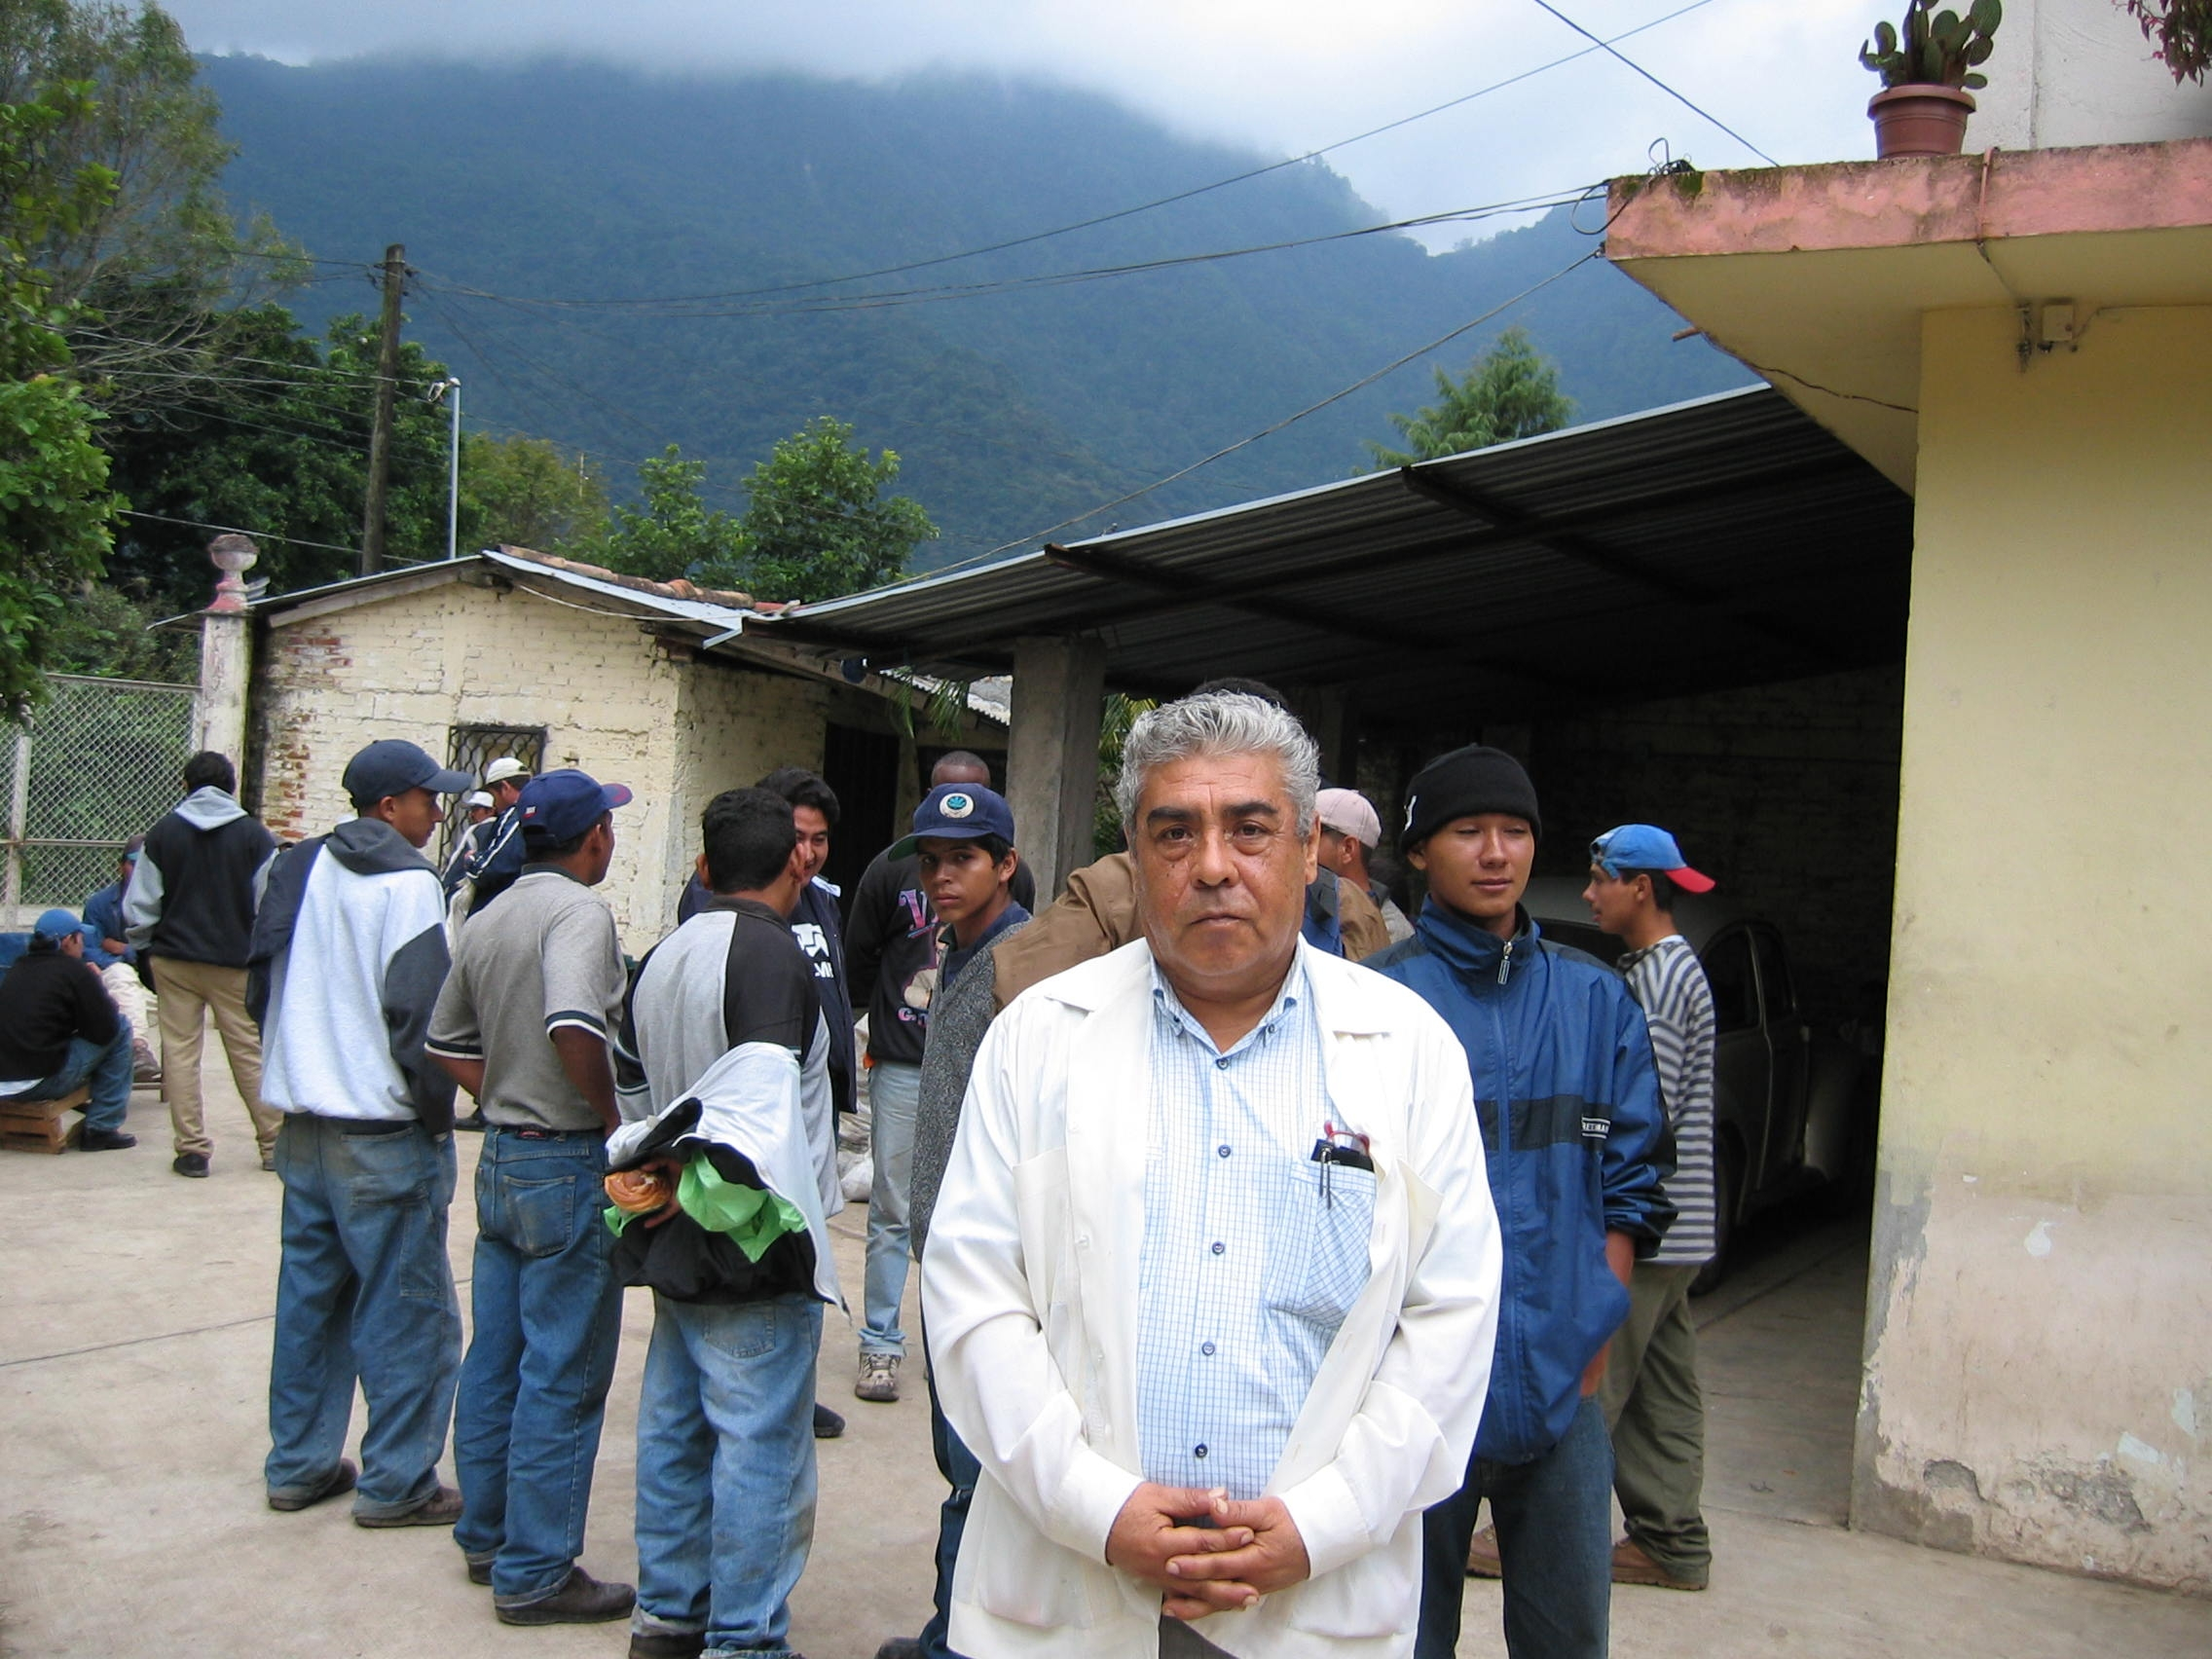 At the María Auxiliadora Church near Orizaba, Mexico, priest Salamón Lemus Lemus allows hundreds of migrants to sleep and eat inside the church. Over his lifetime, the priest saved $37,500 for his retirement. When he was 63 years old, he quietly donated the entire amount to buy land to build a migrant shelter.